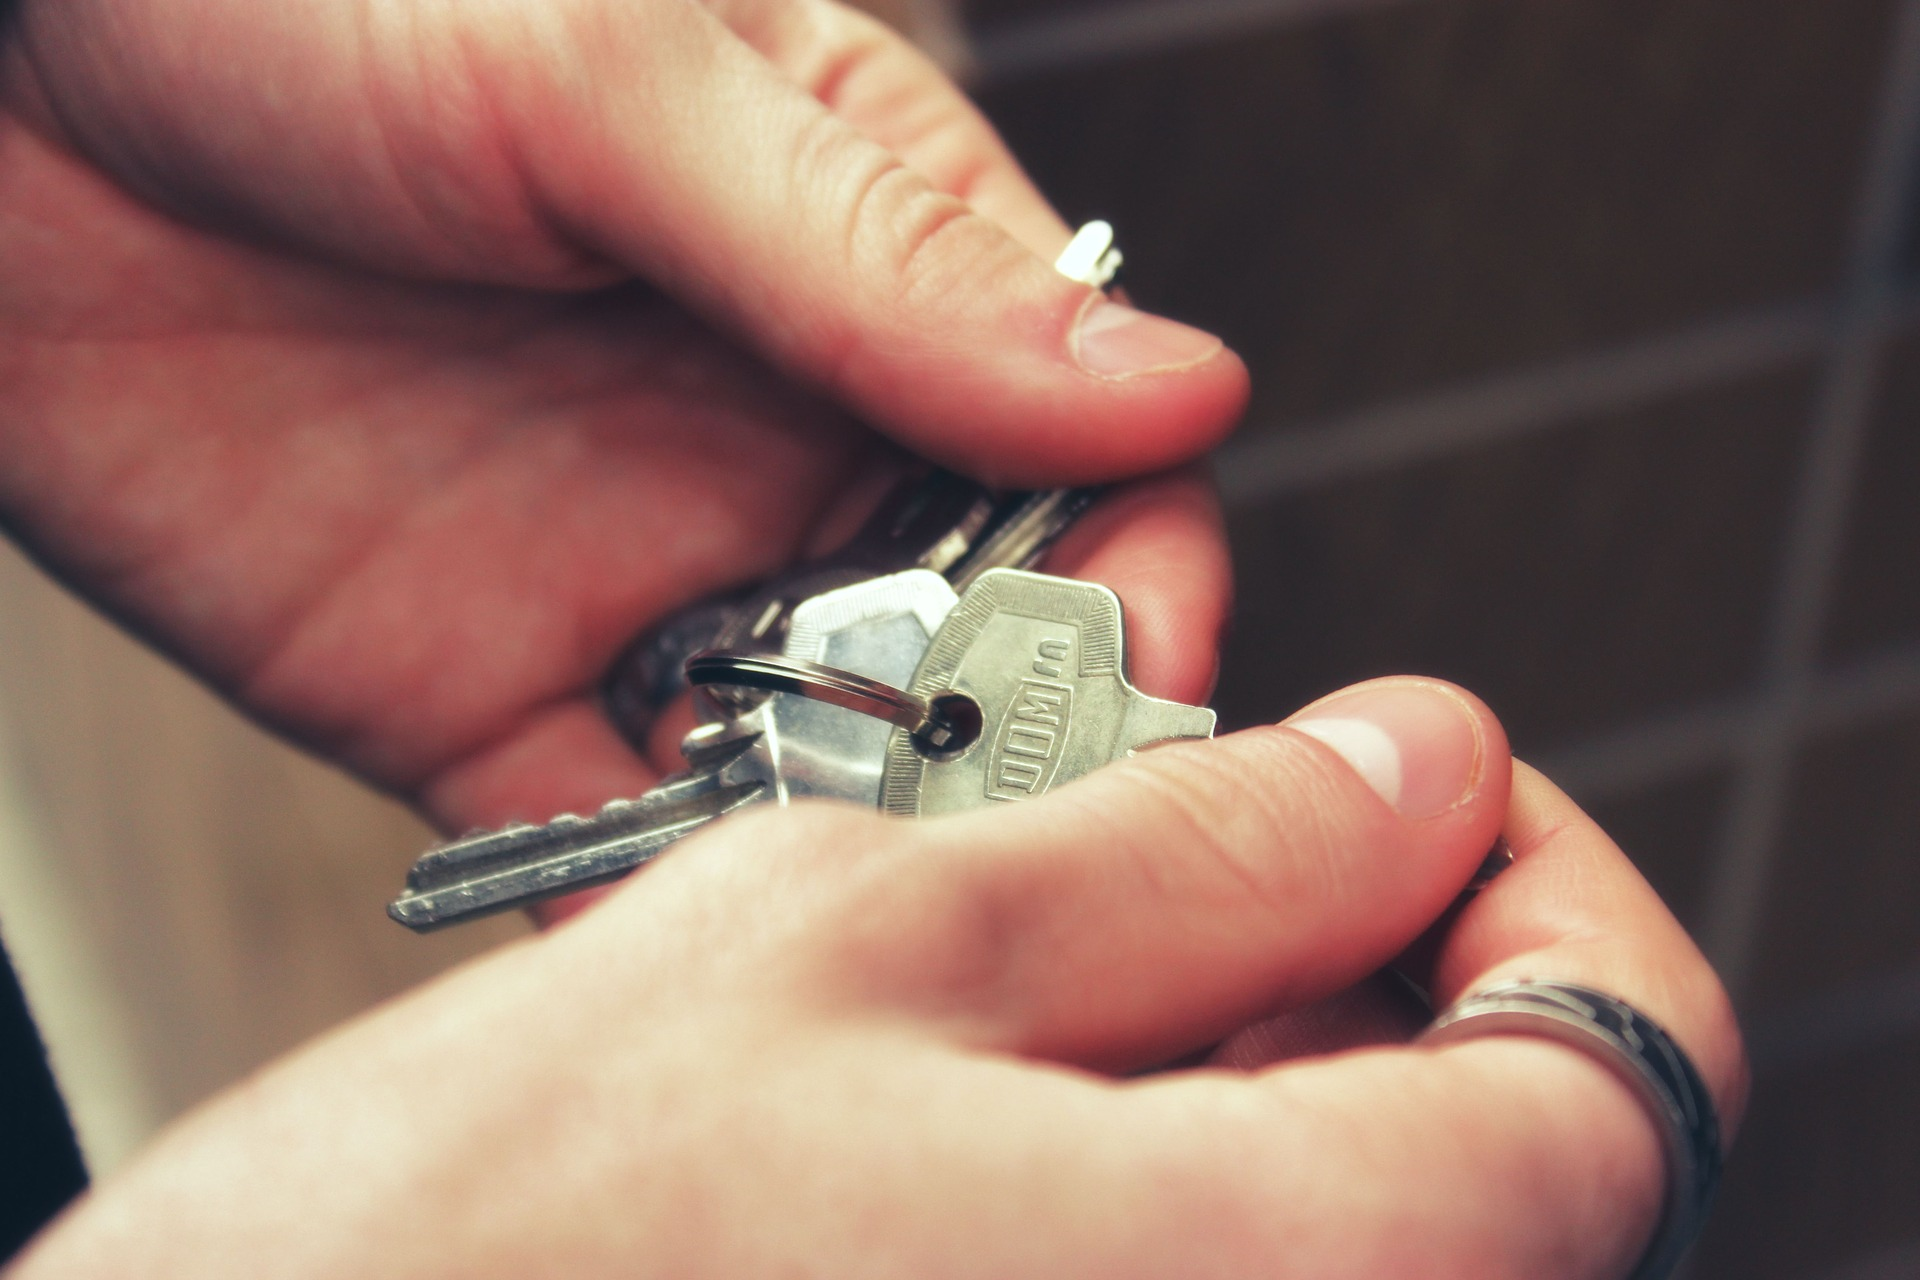 does-someone-else-have-your-house-key.jpg